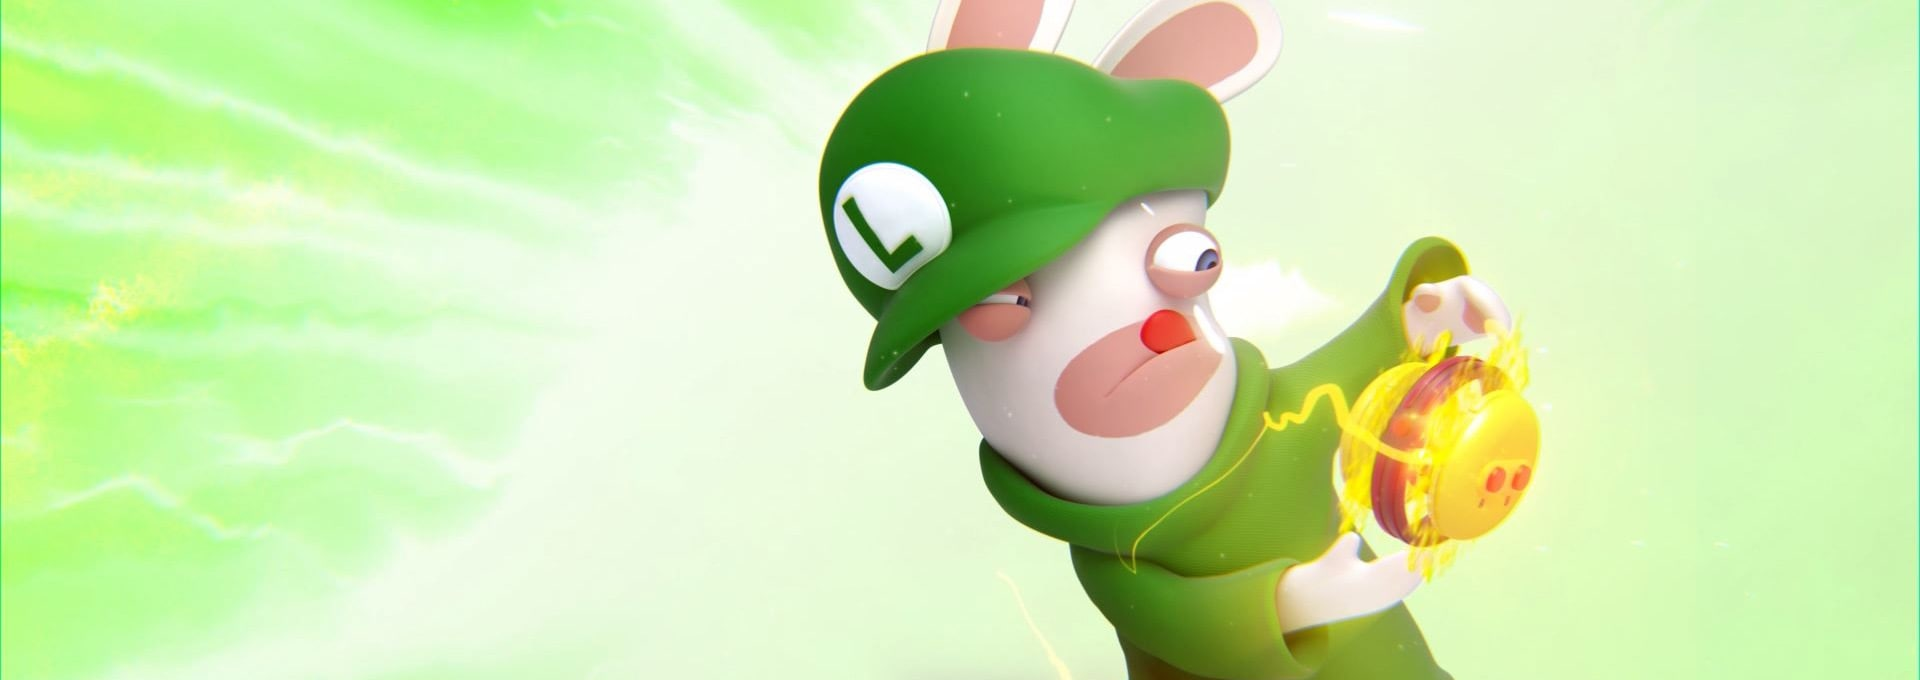 [2017-08-16] Character Guide: Rabbid Luigi - COVER